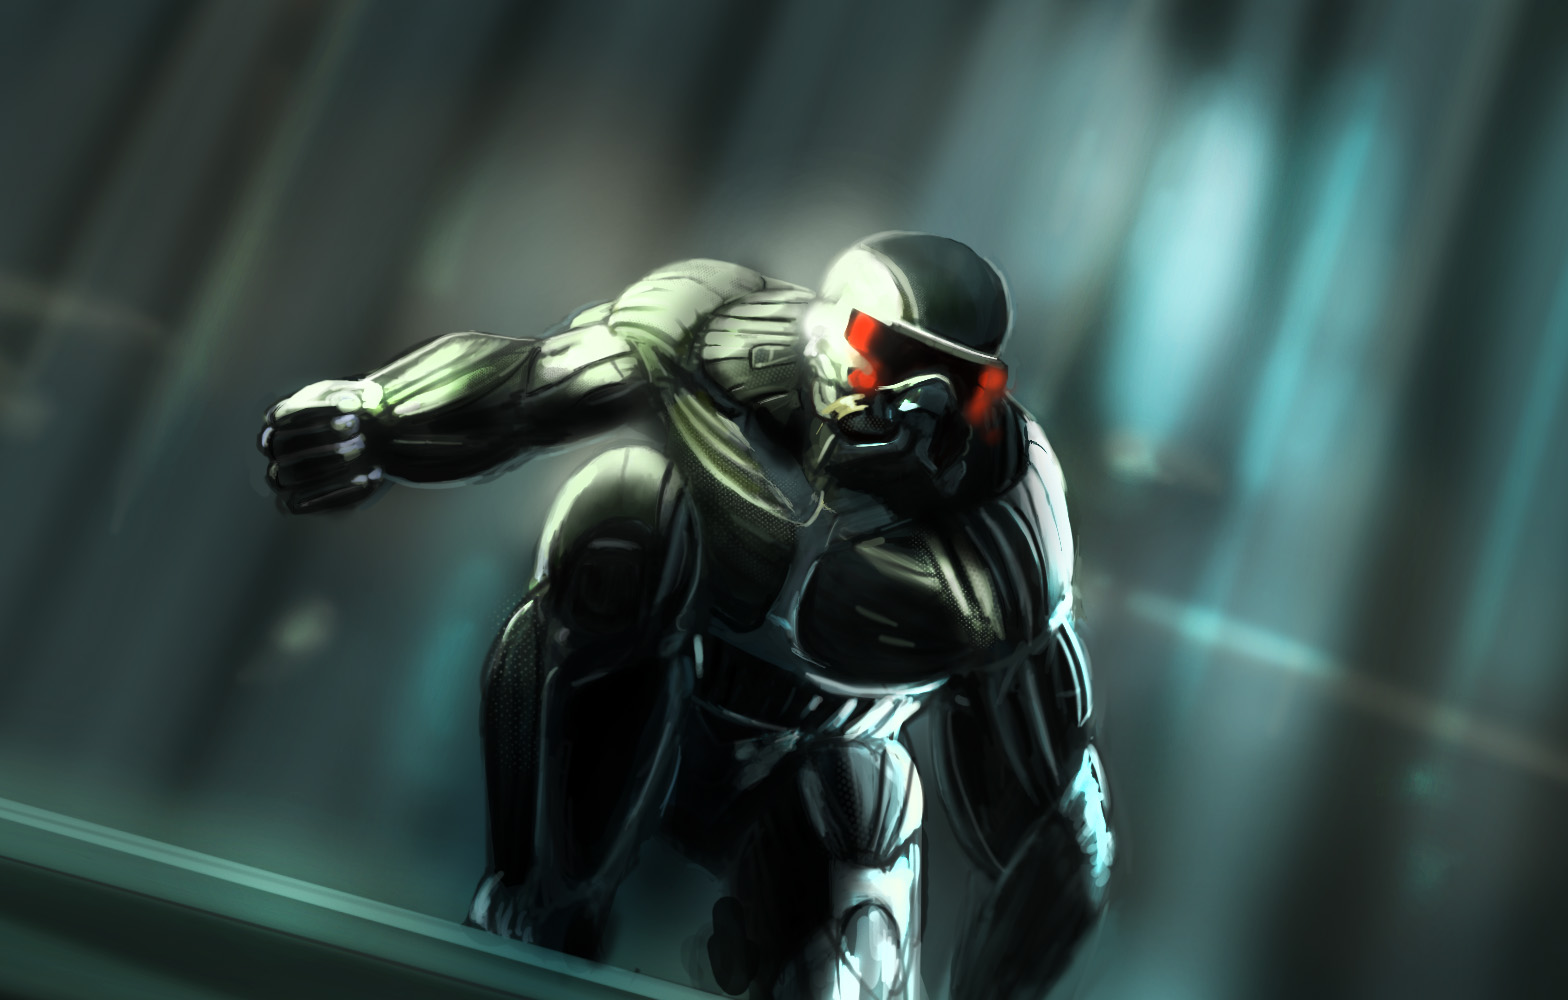 Mech Girl Wallpaper Crysis 2 Nanosuit Girls In Mech Suits